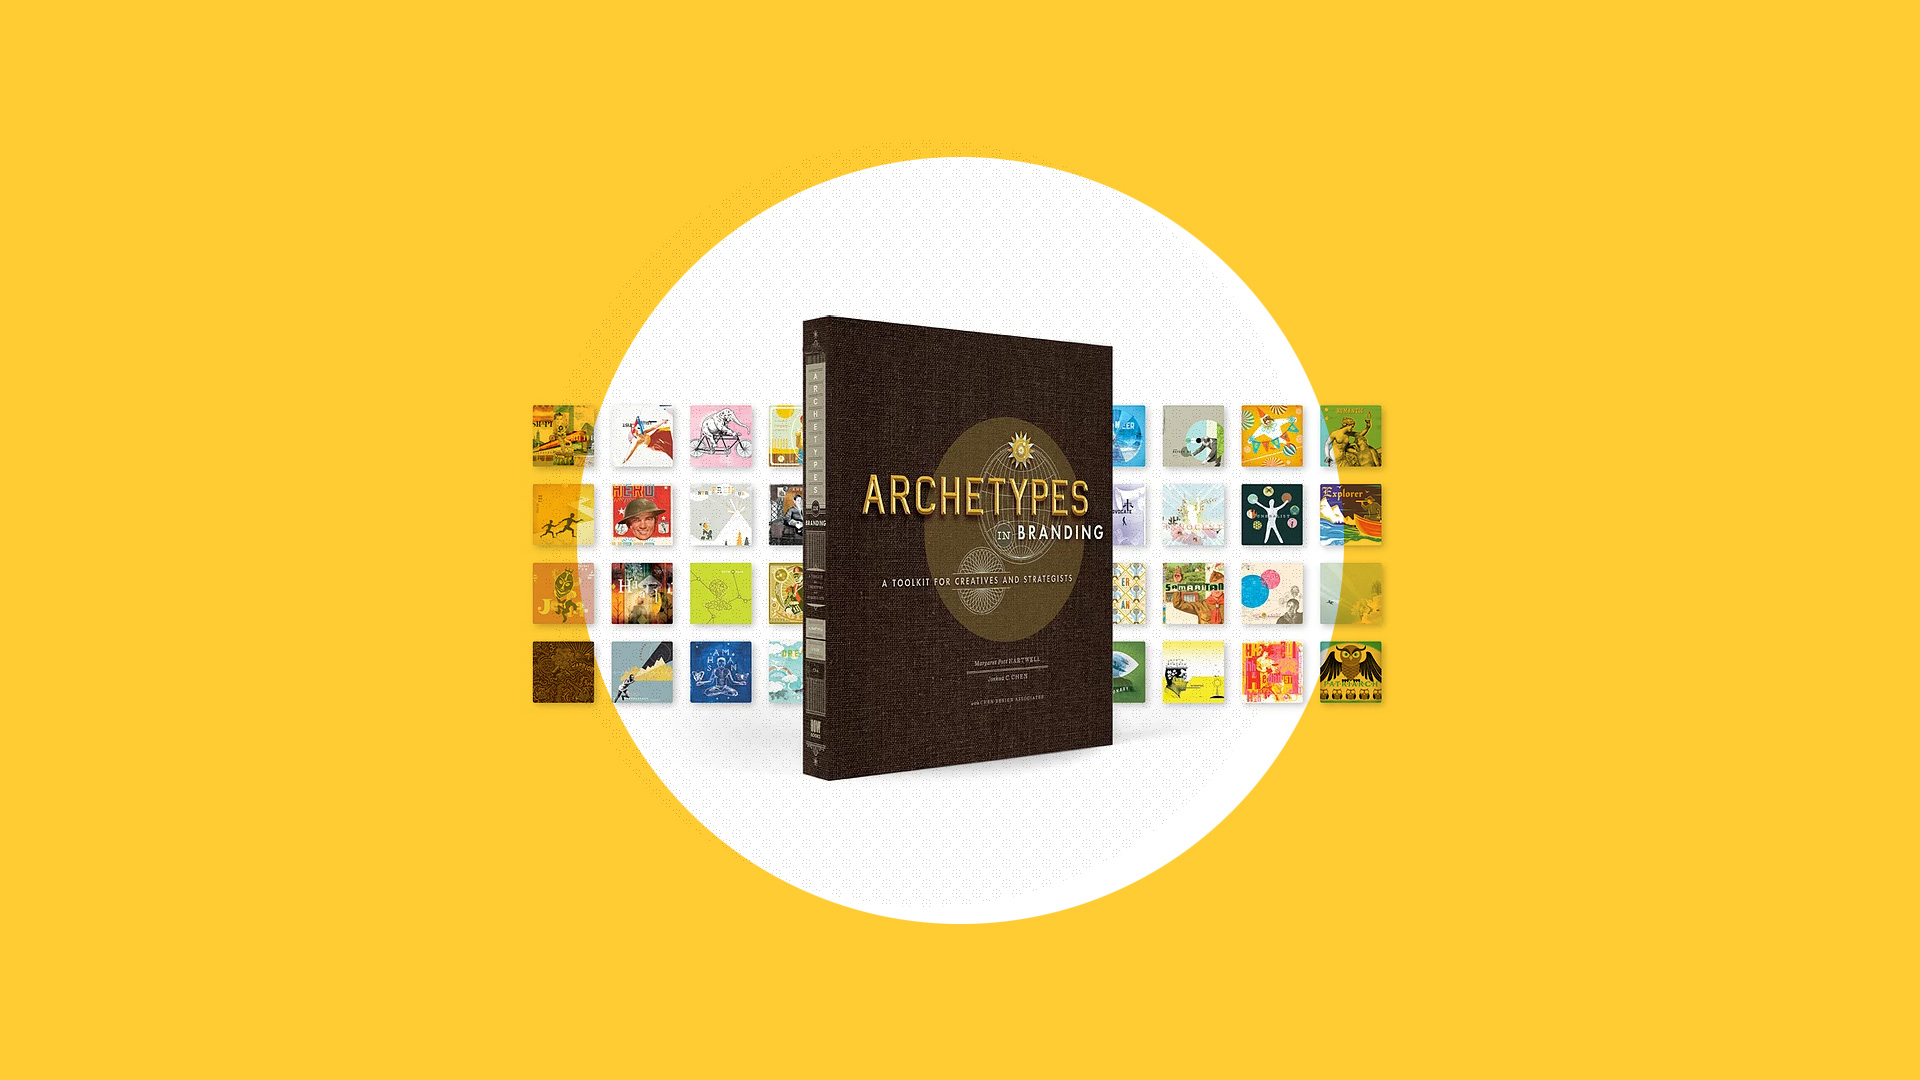 Archetypes in Branding toolkit book review